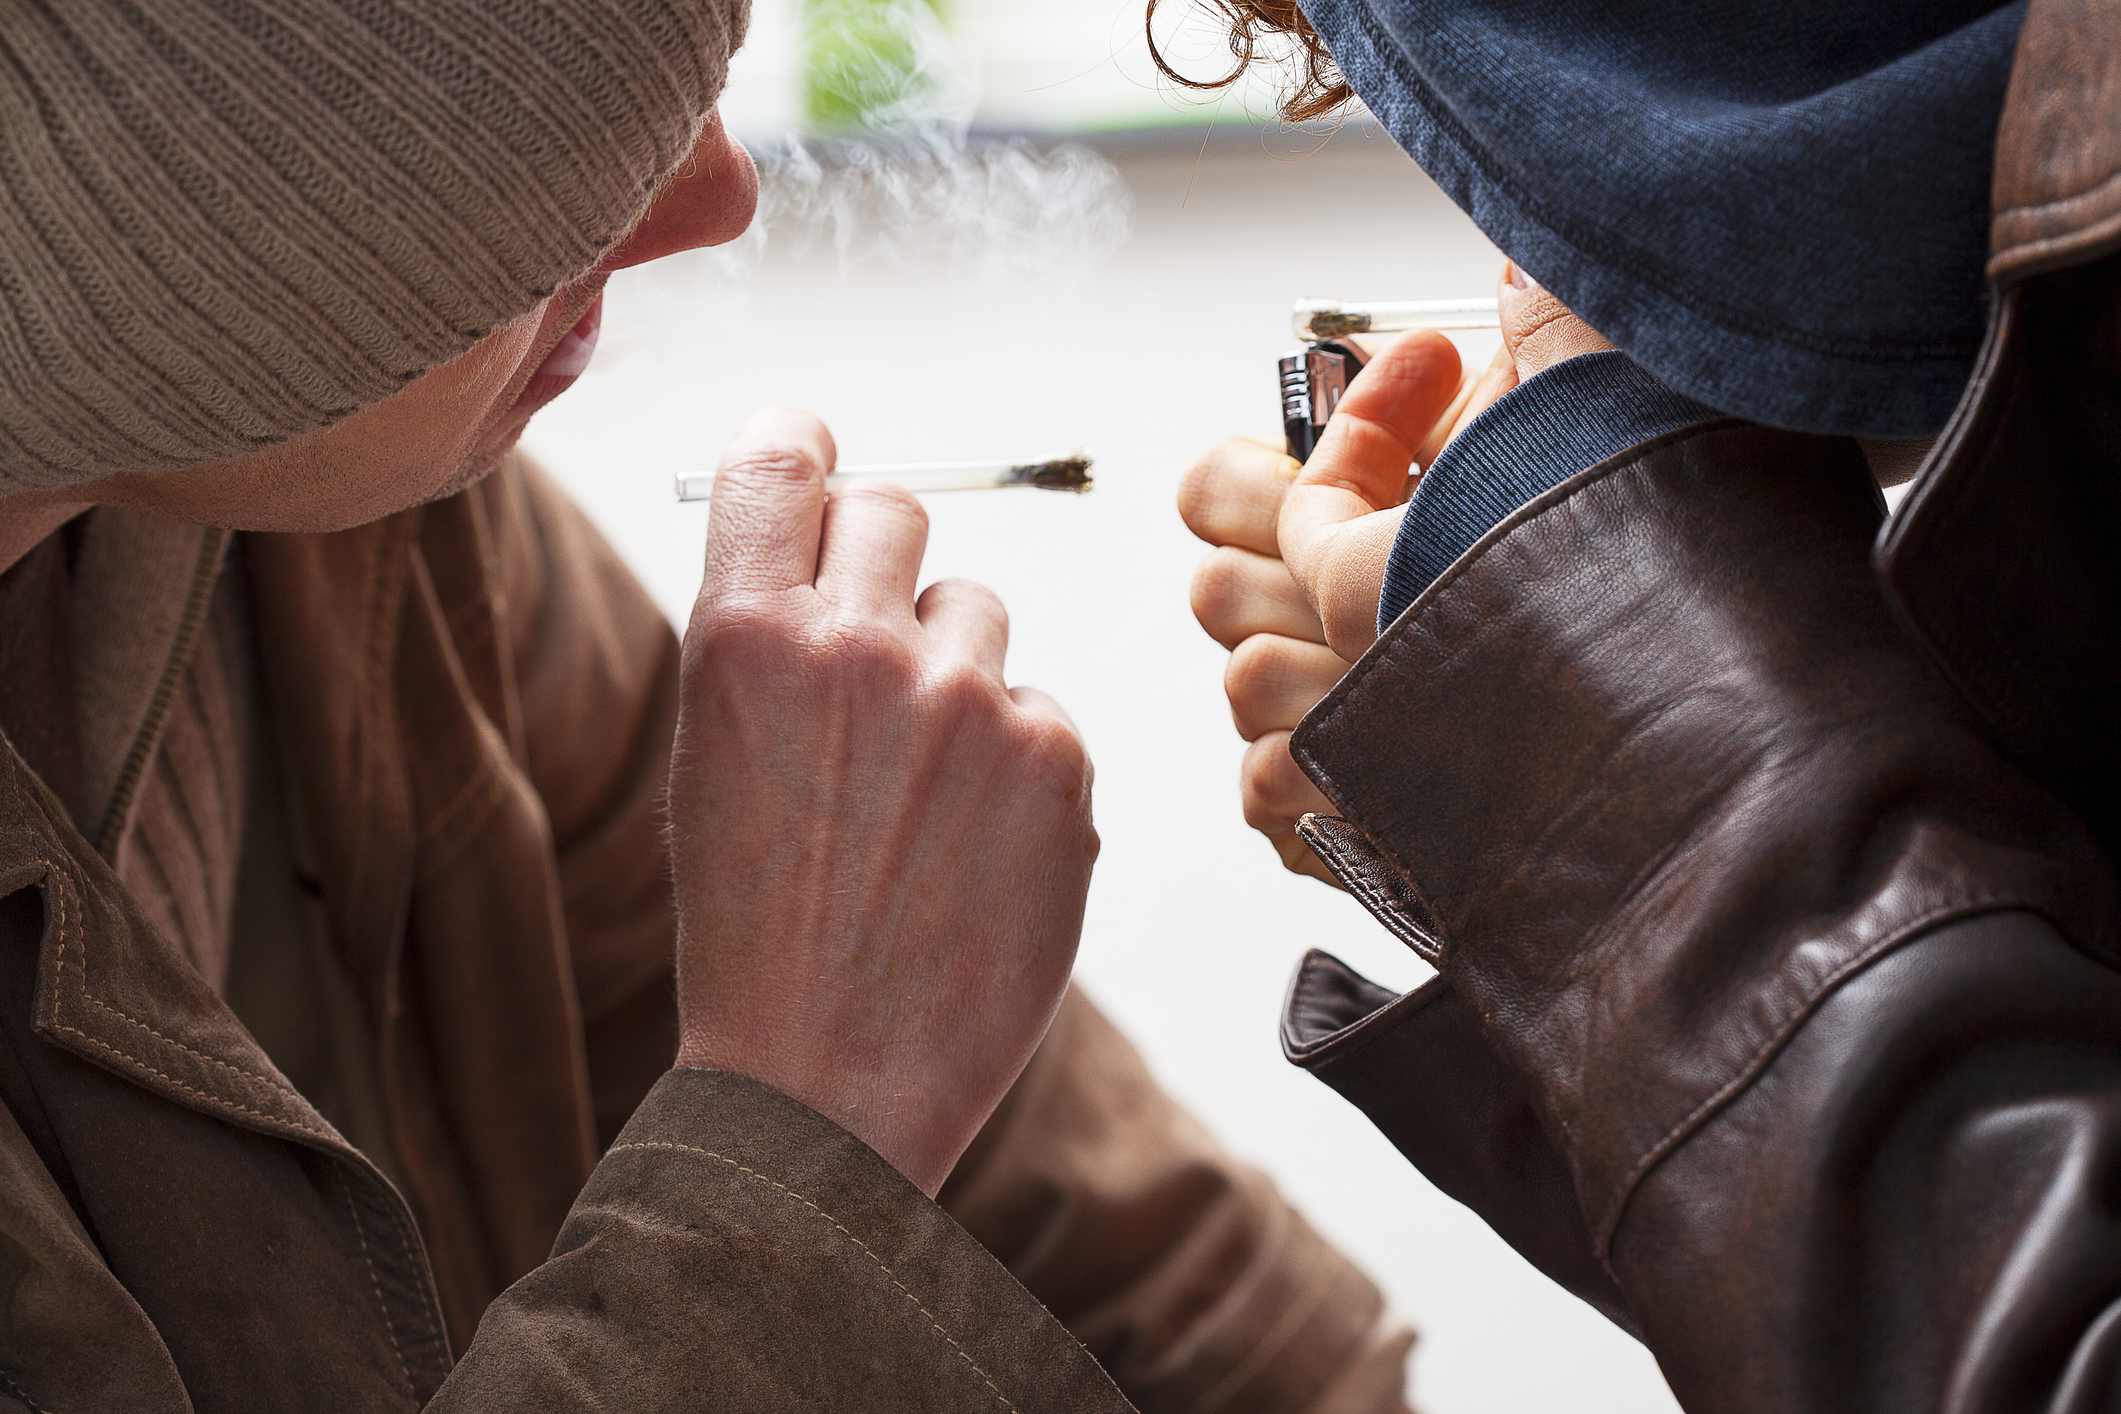 Frequently Asked Questions About Marijuana -